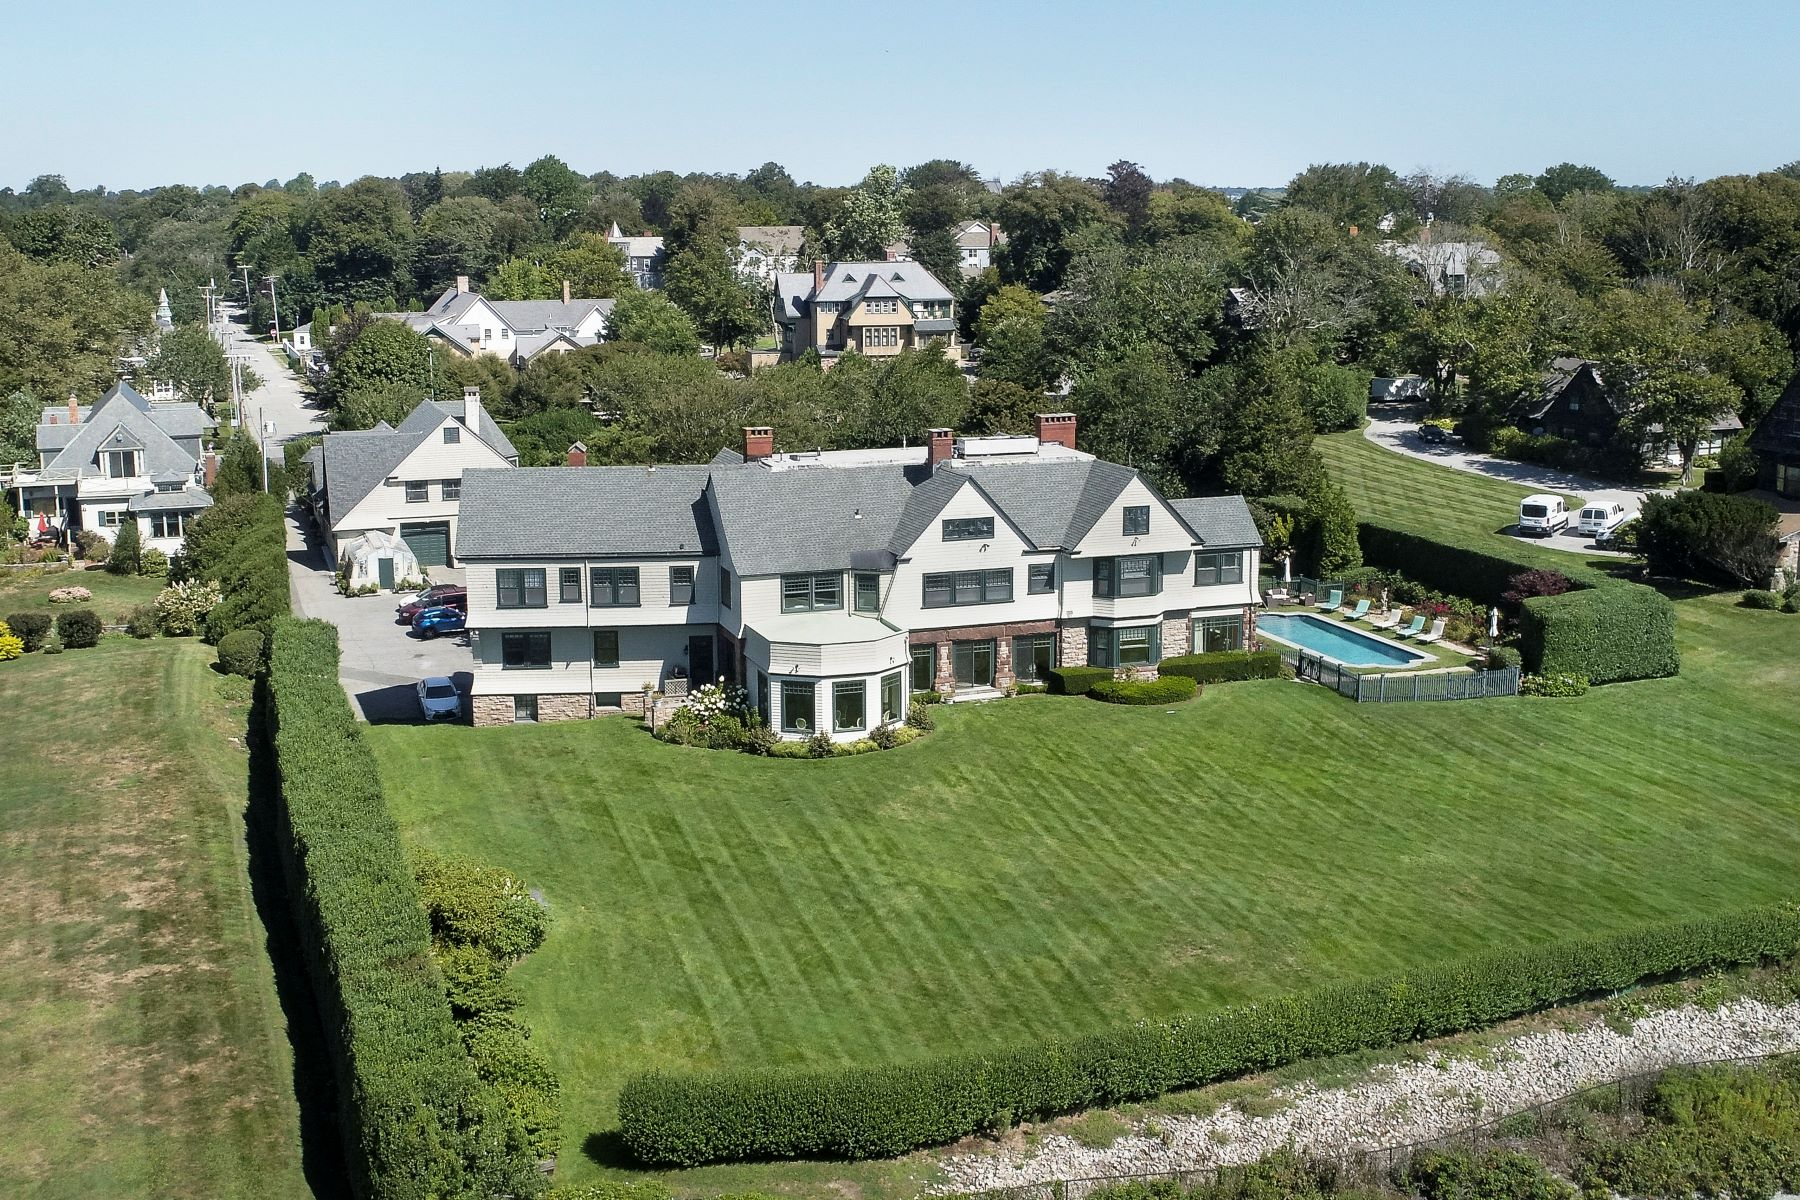 Single Family Homes for Sale at Honeysuckle Lodge 225 Ruggles Avenue Newport, Rhode Island 02840 United States